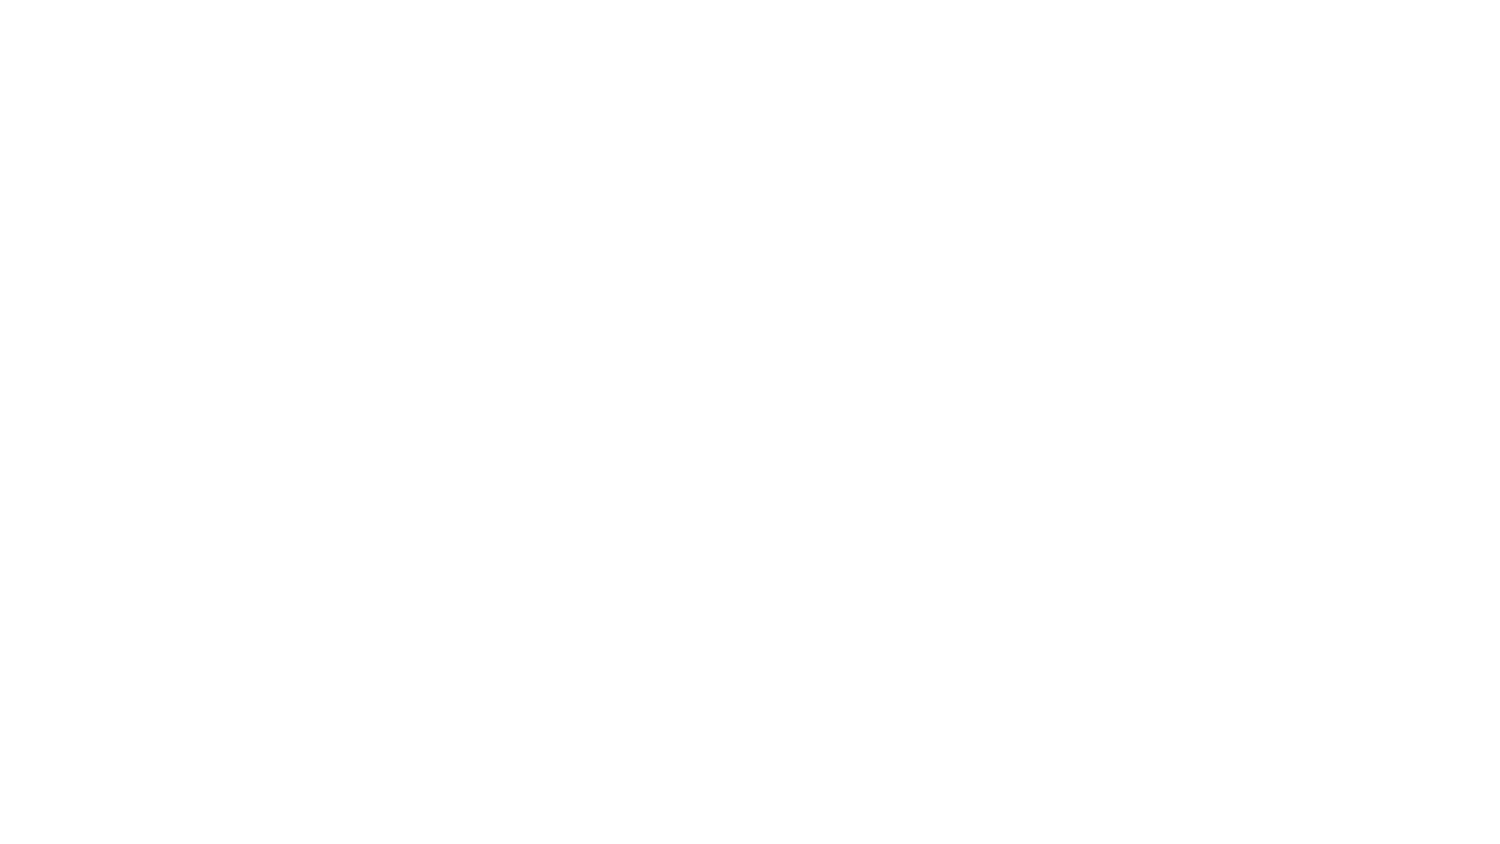 Crowd & Town Creative